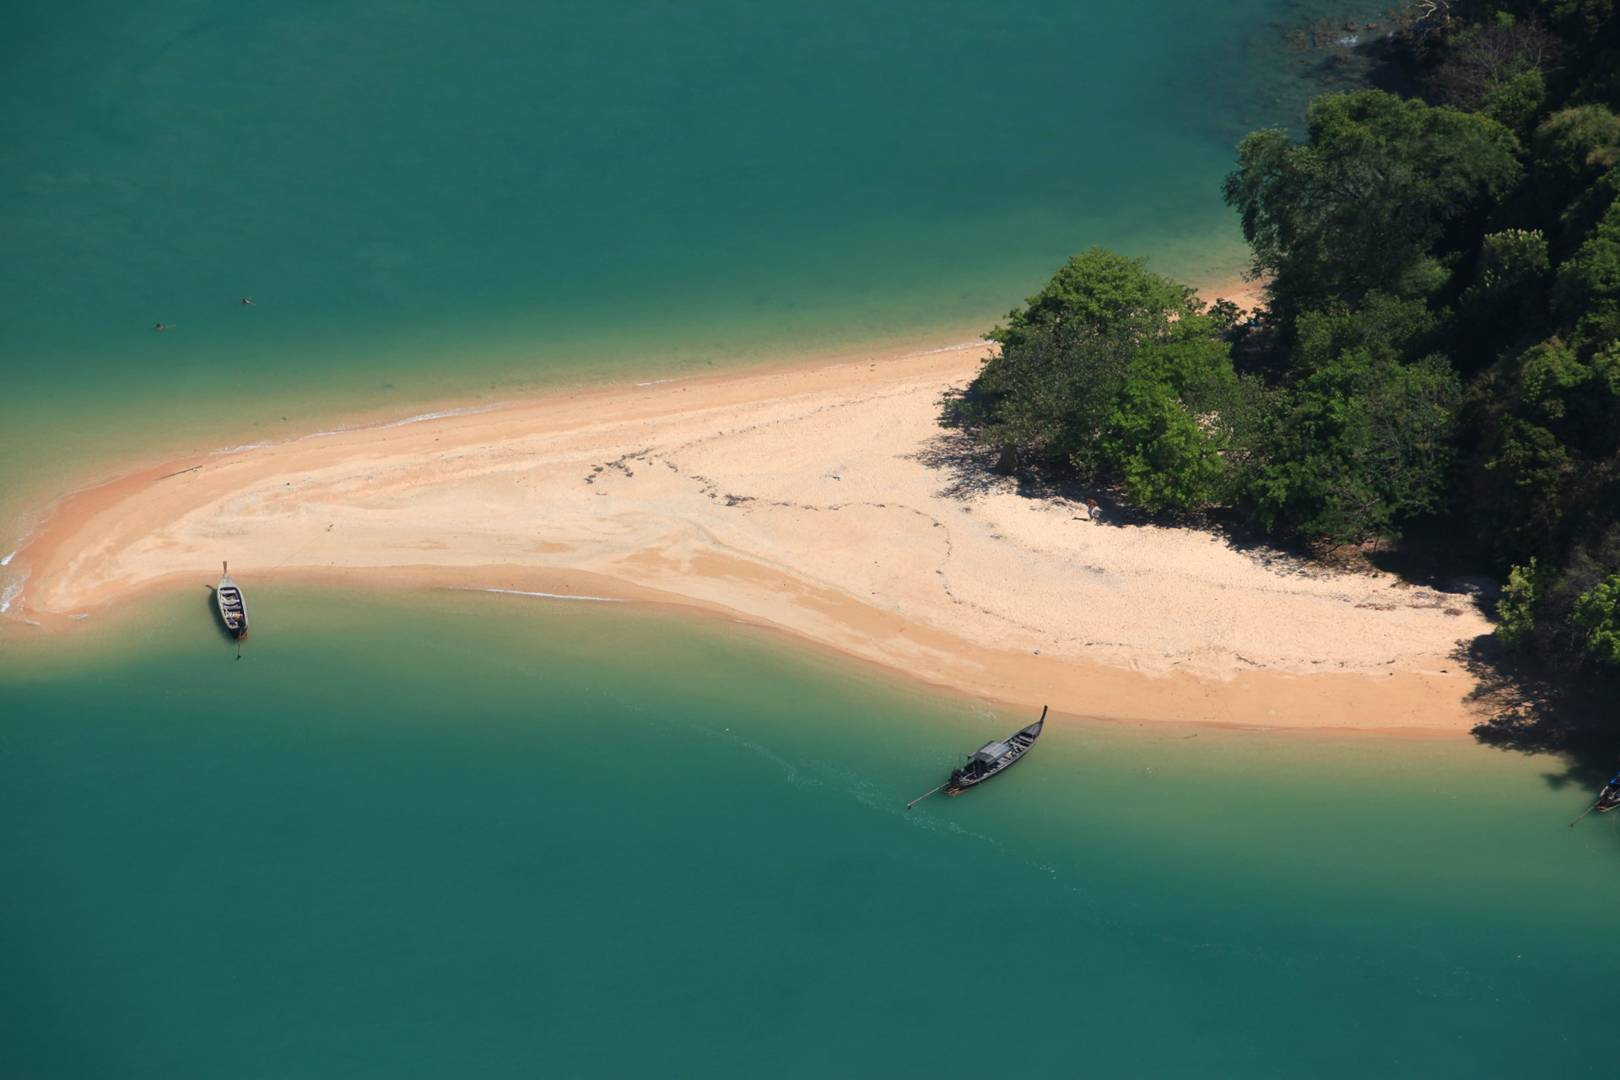 Best of Thailand's beaches | Where to stay, eat, drink and